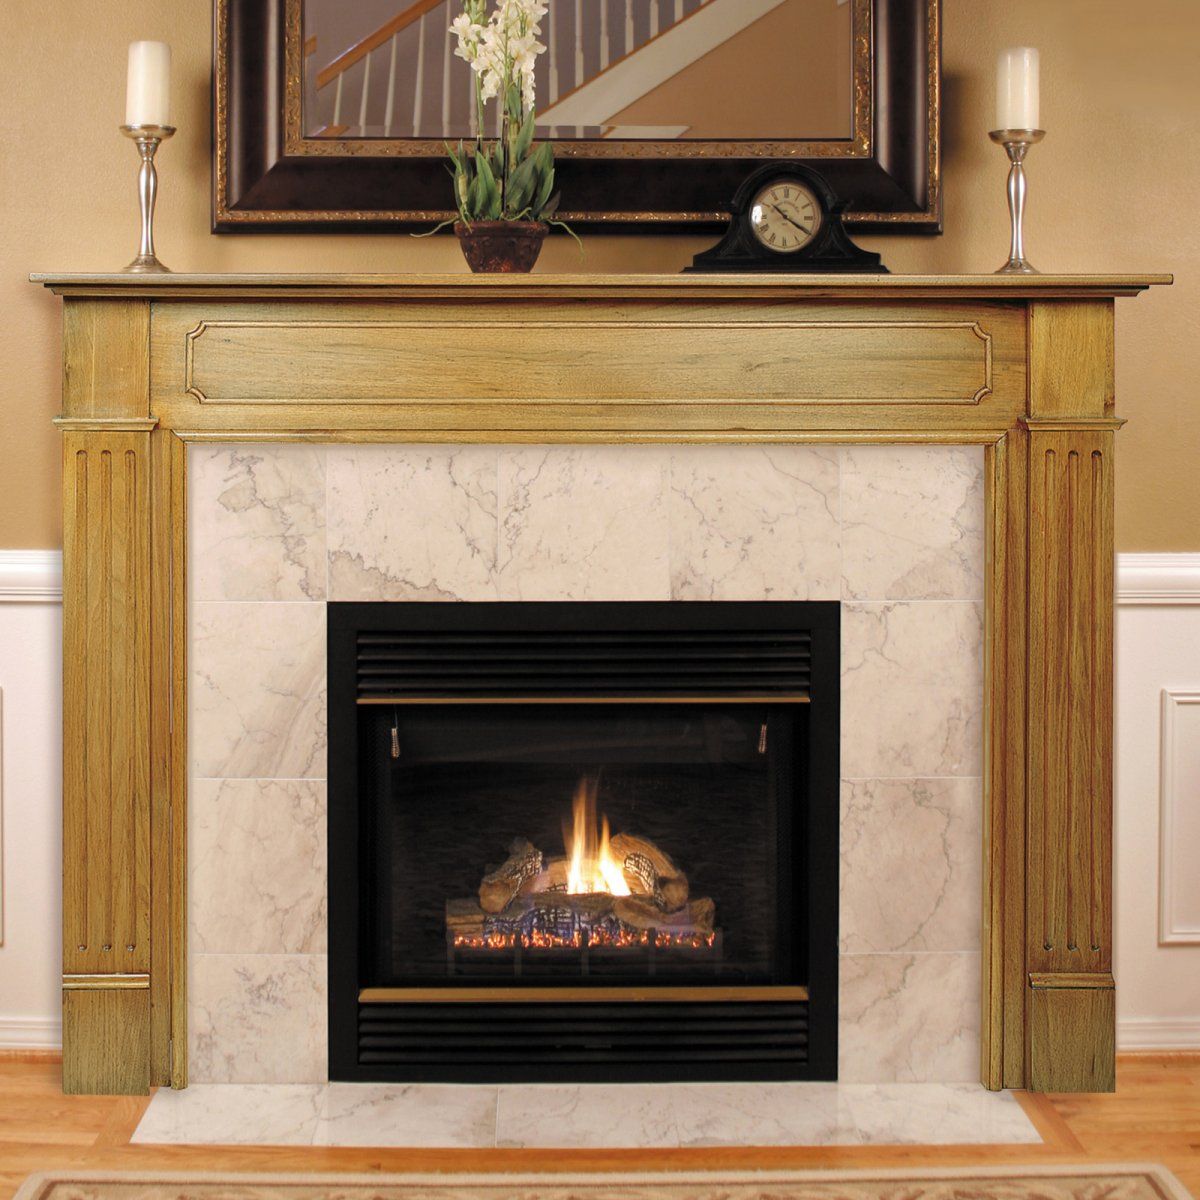 Tips on how to find the best fireplace mantels and for Wood fireplace surround designs